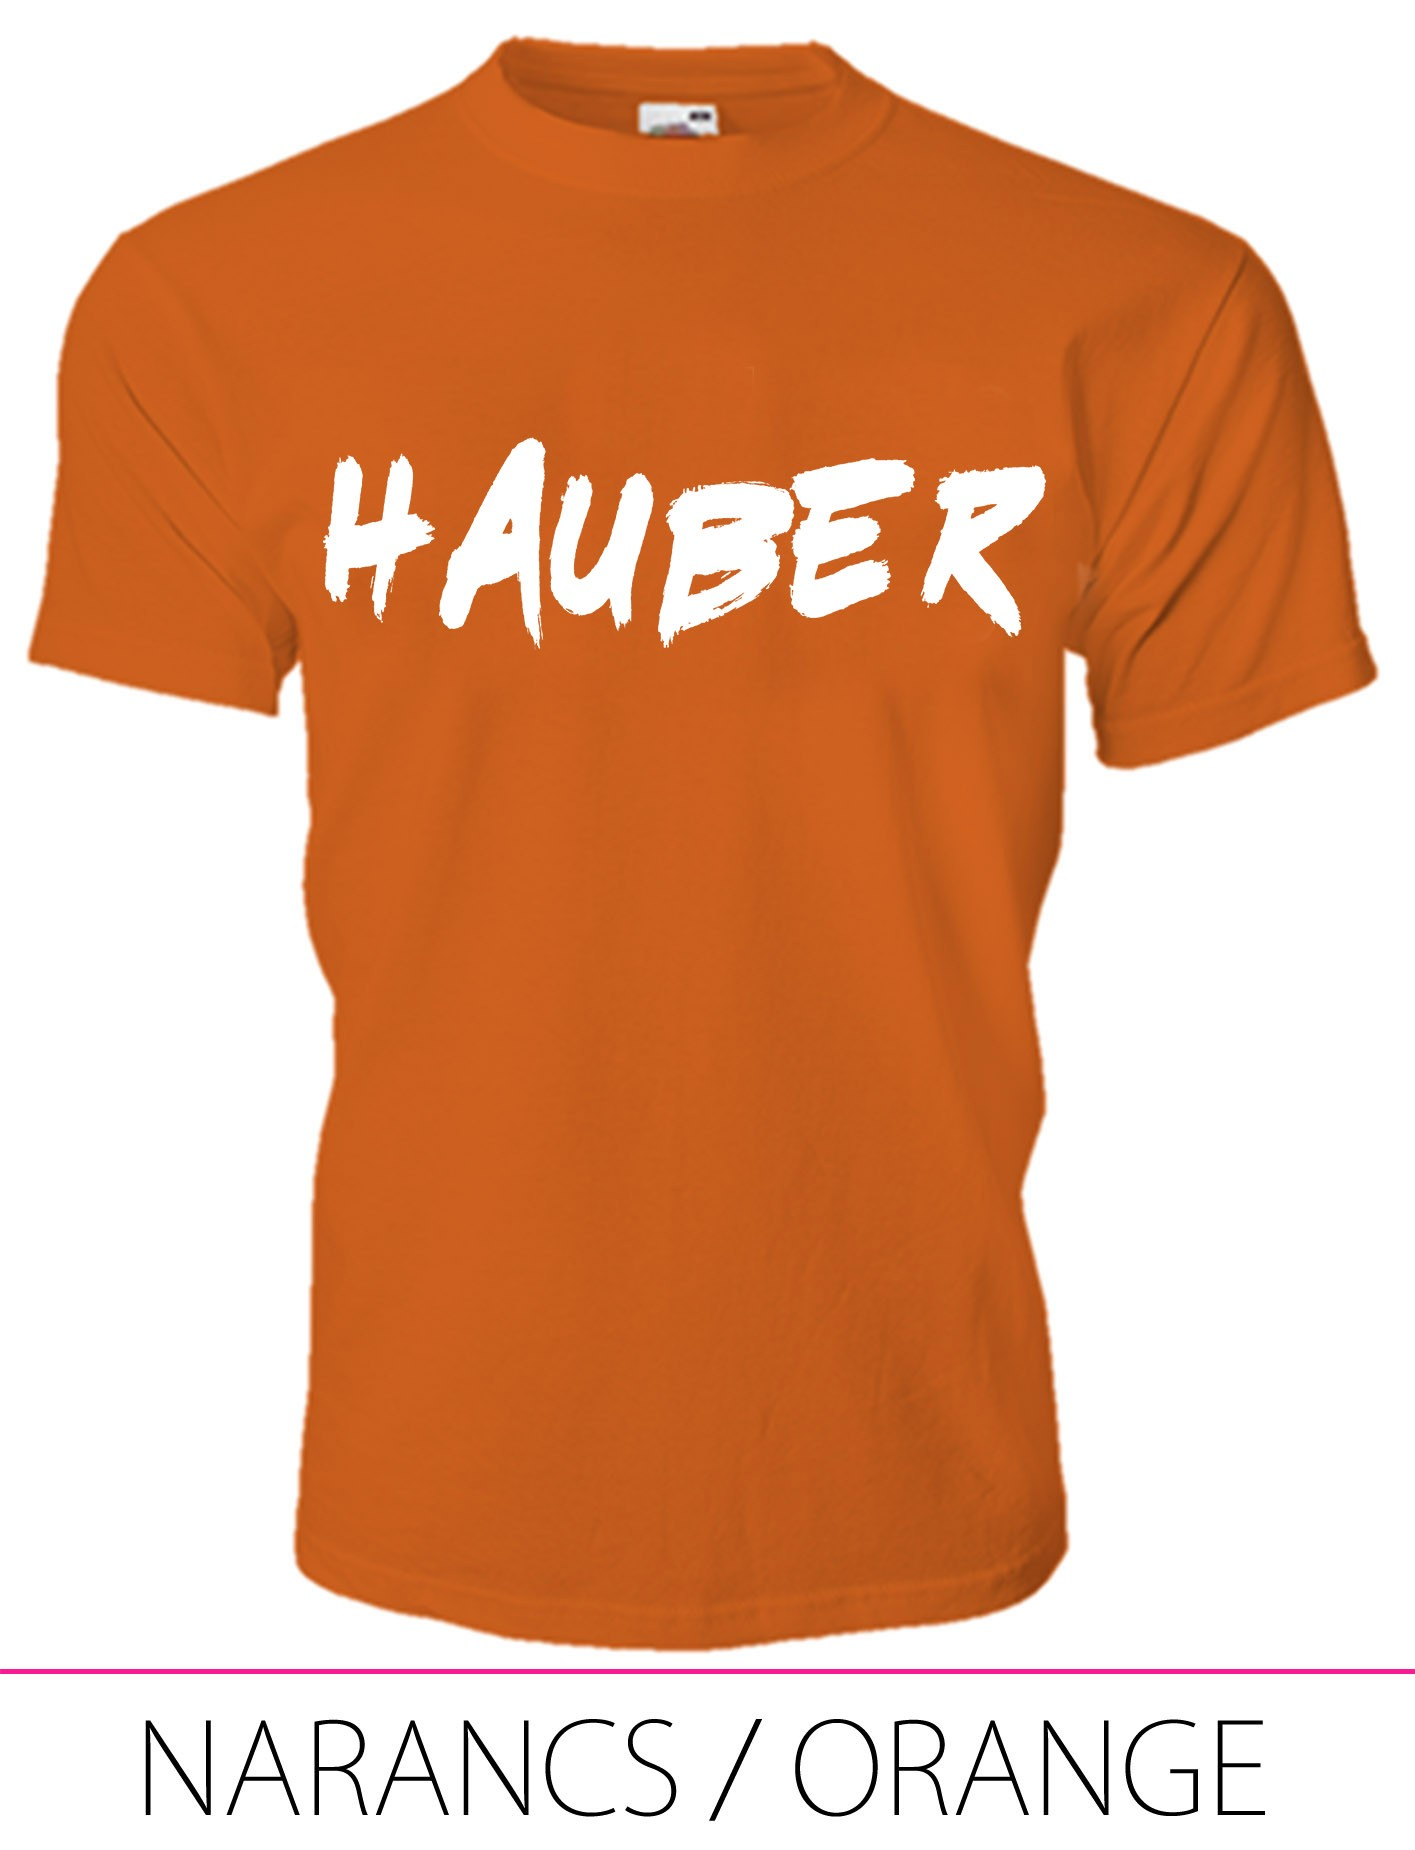 KIDS CREW NECK T-SHIRT HAUBER ORANGE